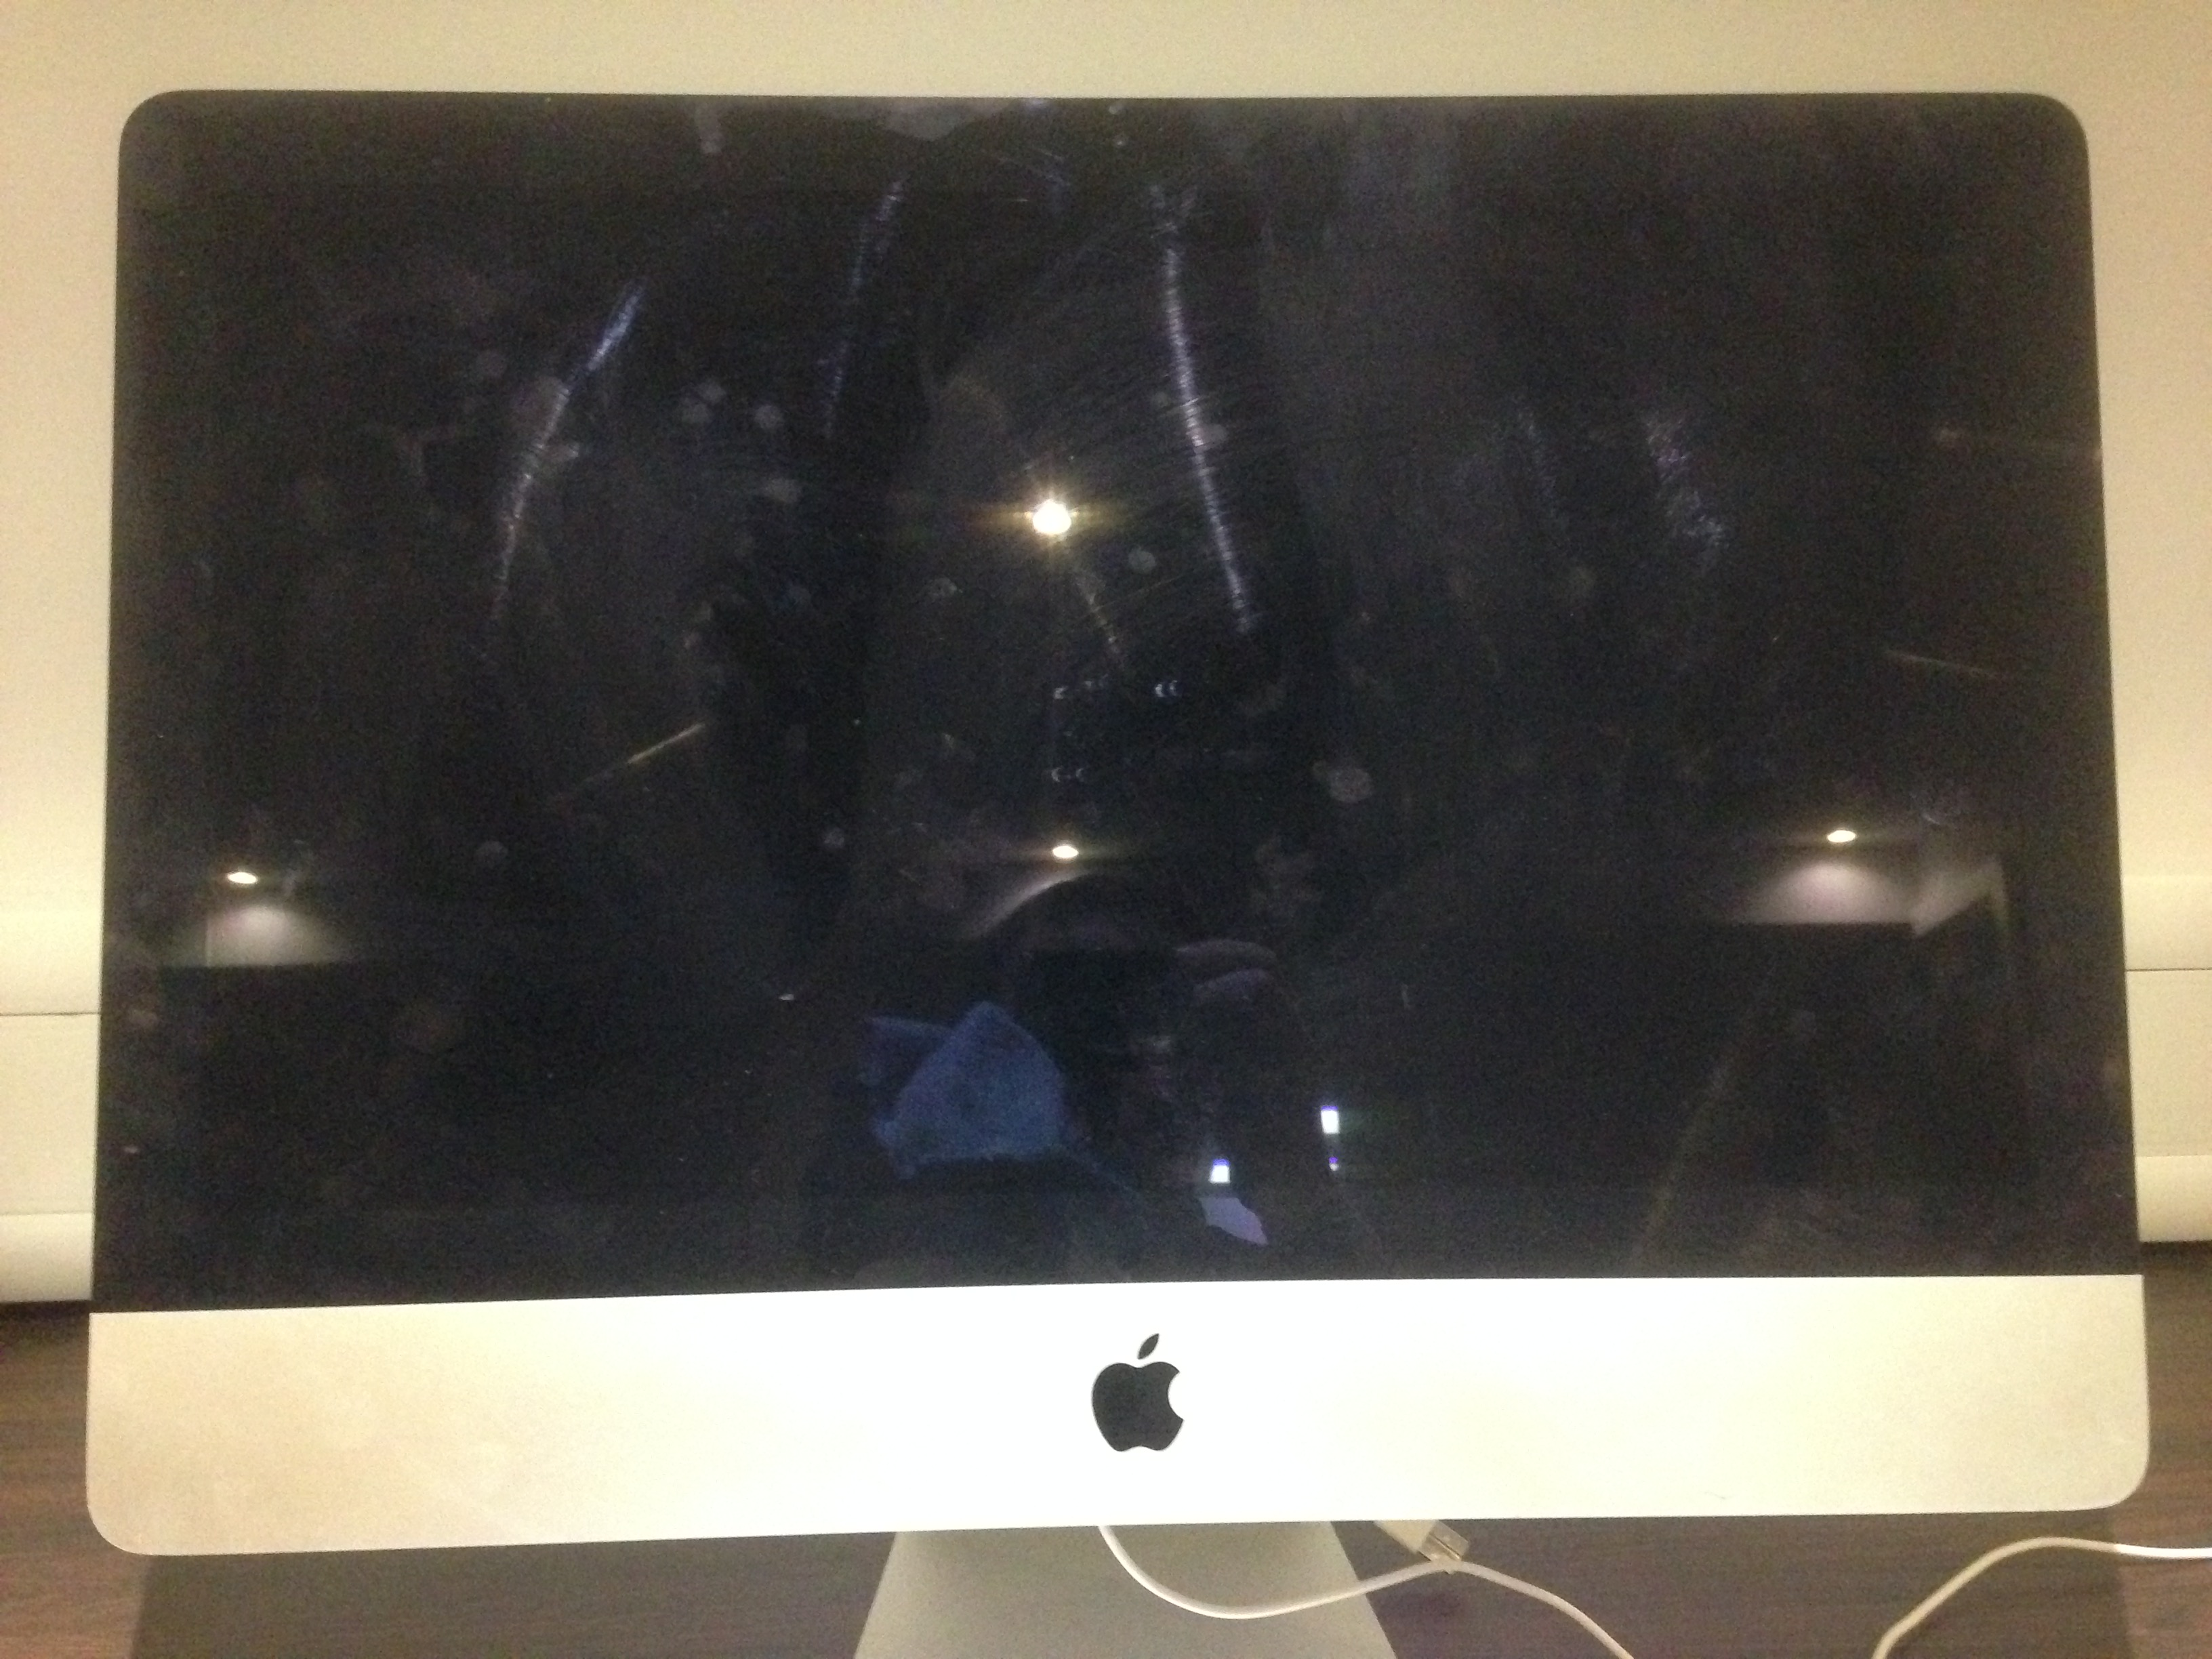 Dirty iMac Before Computer Cleaning Service